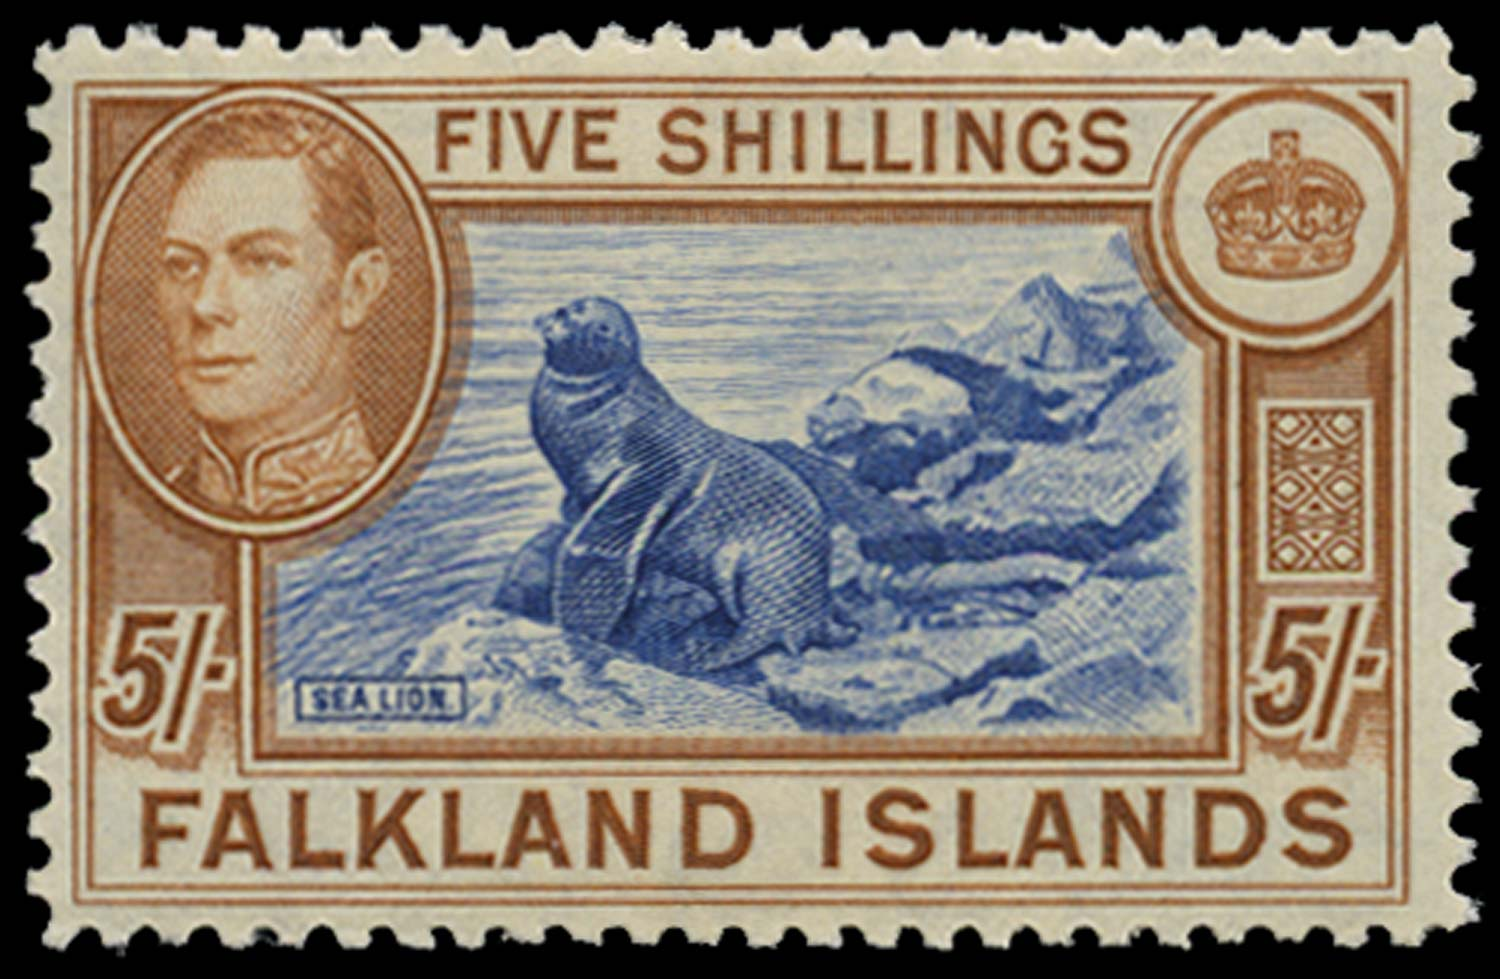 FALKLAND ISLANDS 1949  SG161d Mint 5s steel blue and buff-brown